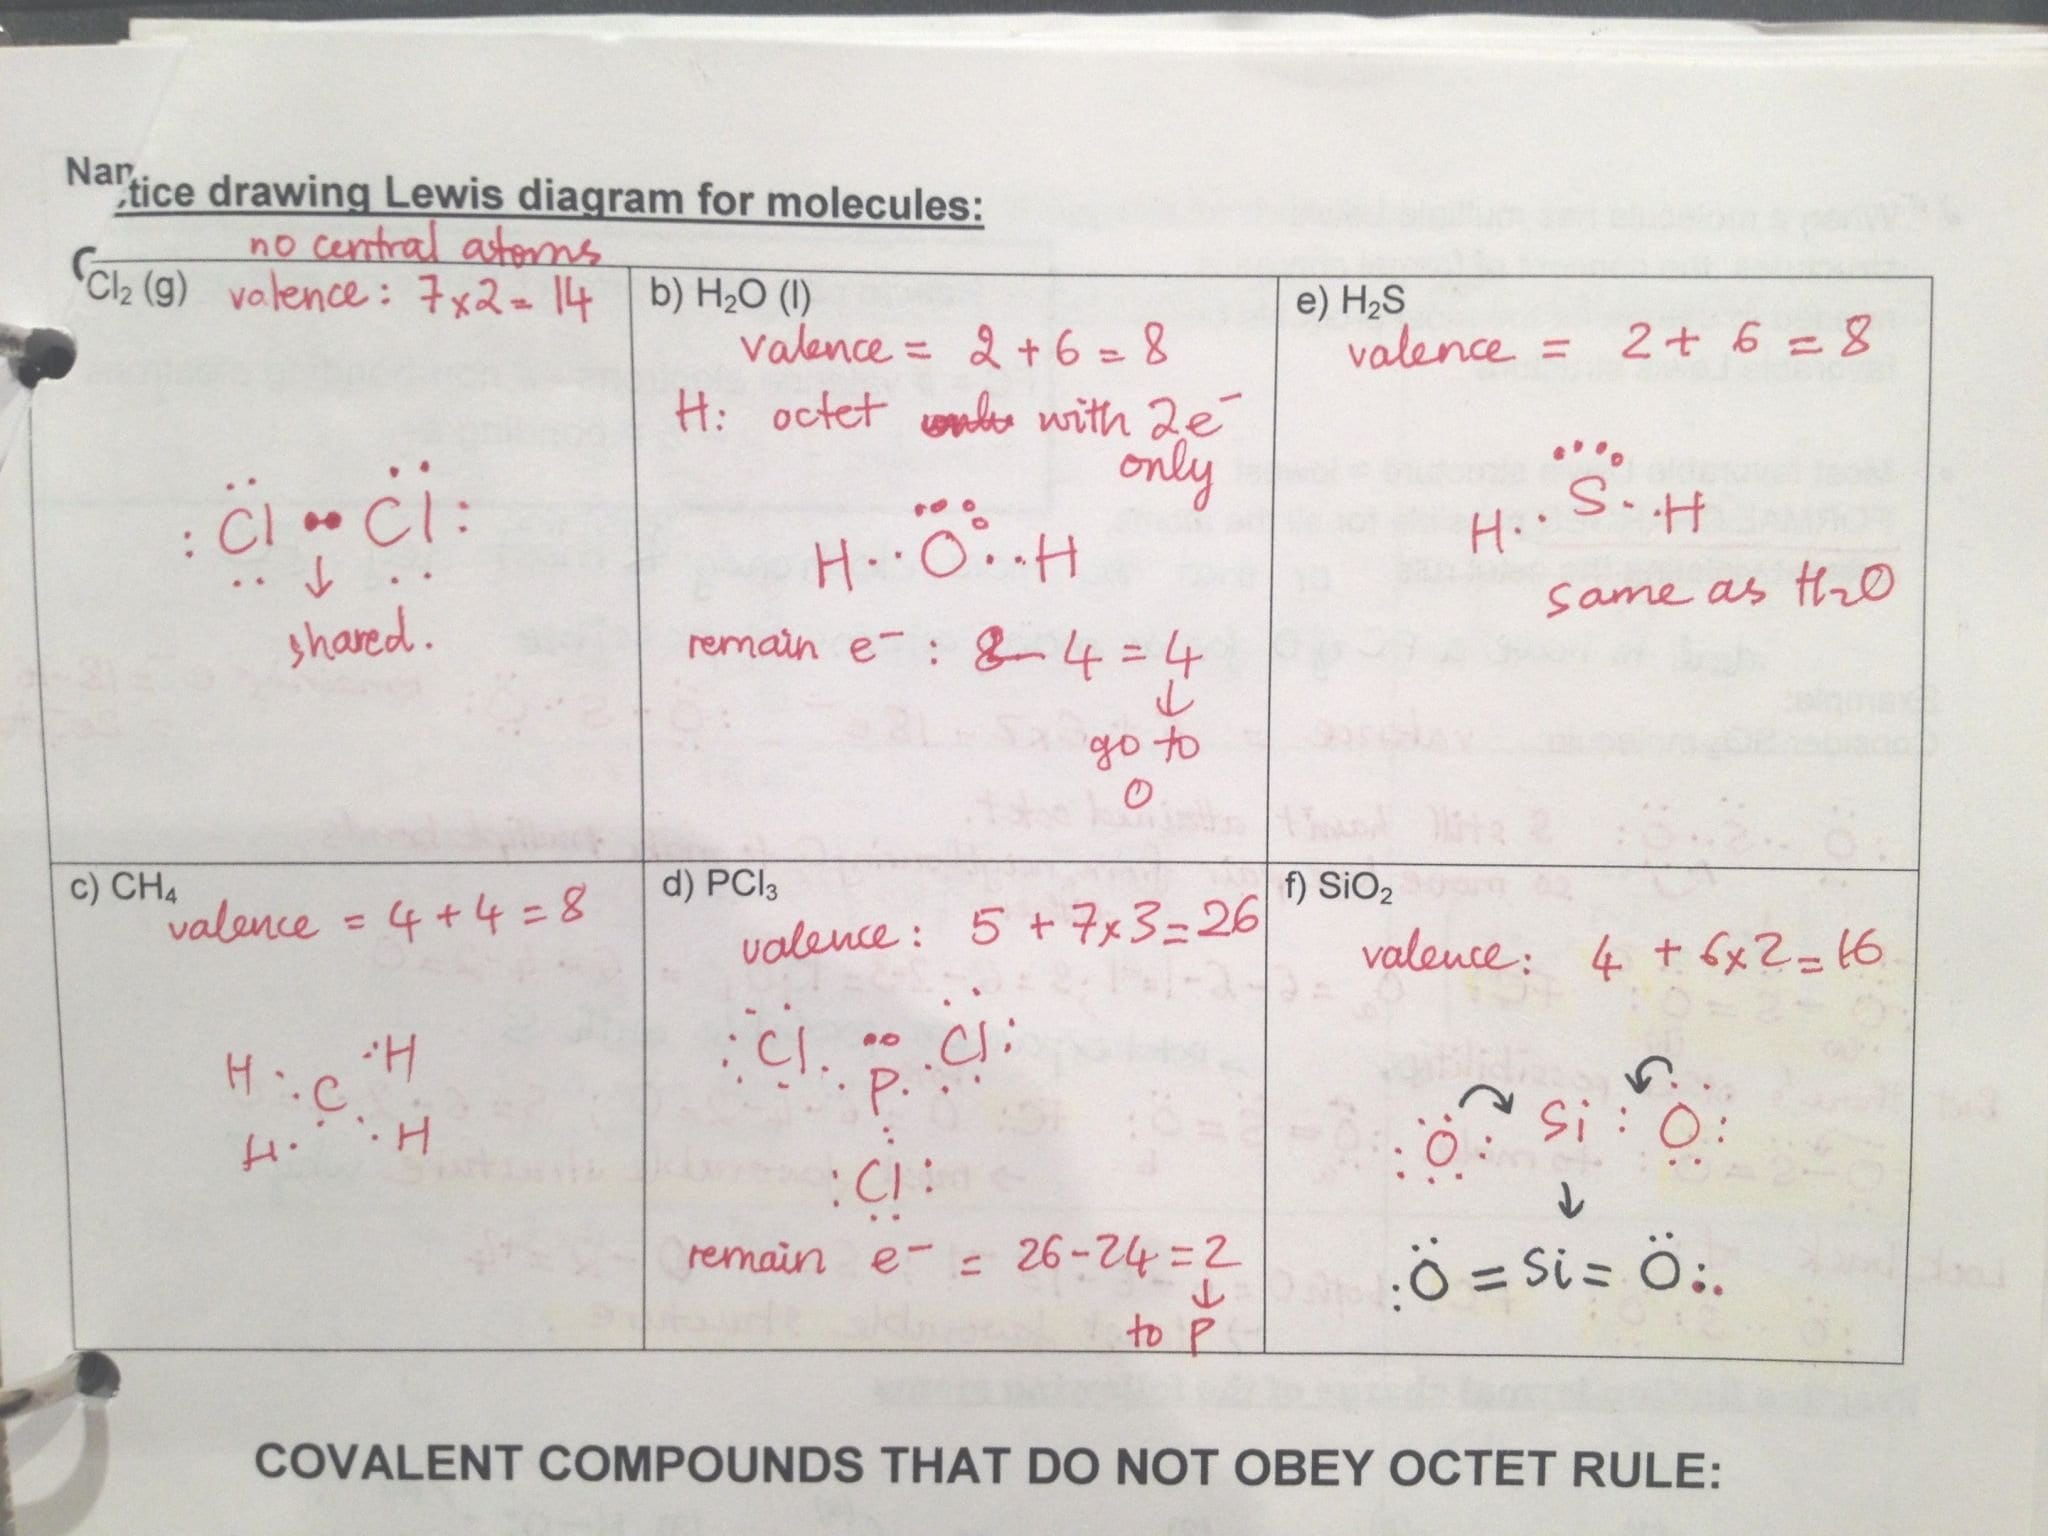 Worksheet Chemical Bonding Ionic And Covalent Answers Part 2 With Regard To Worksheet Chemical Bonding Ionic And Covalent Answers Part 2